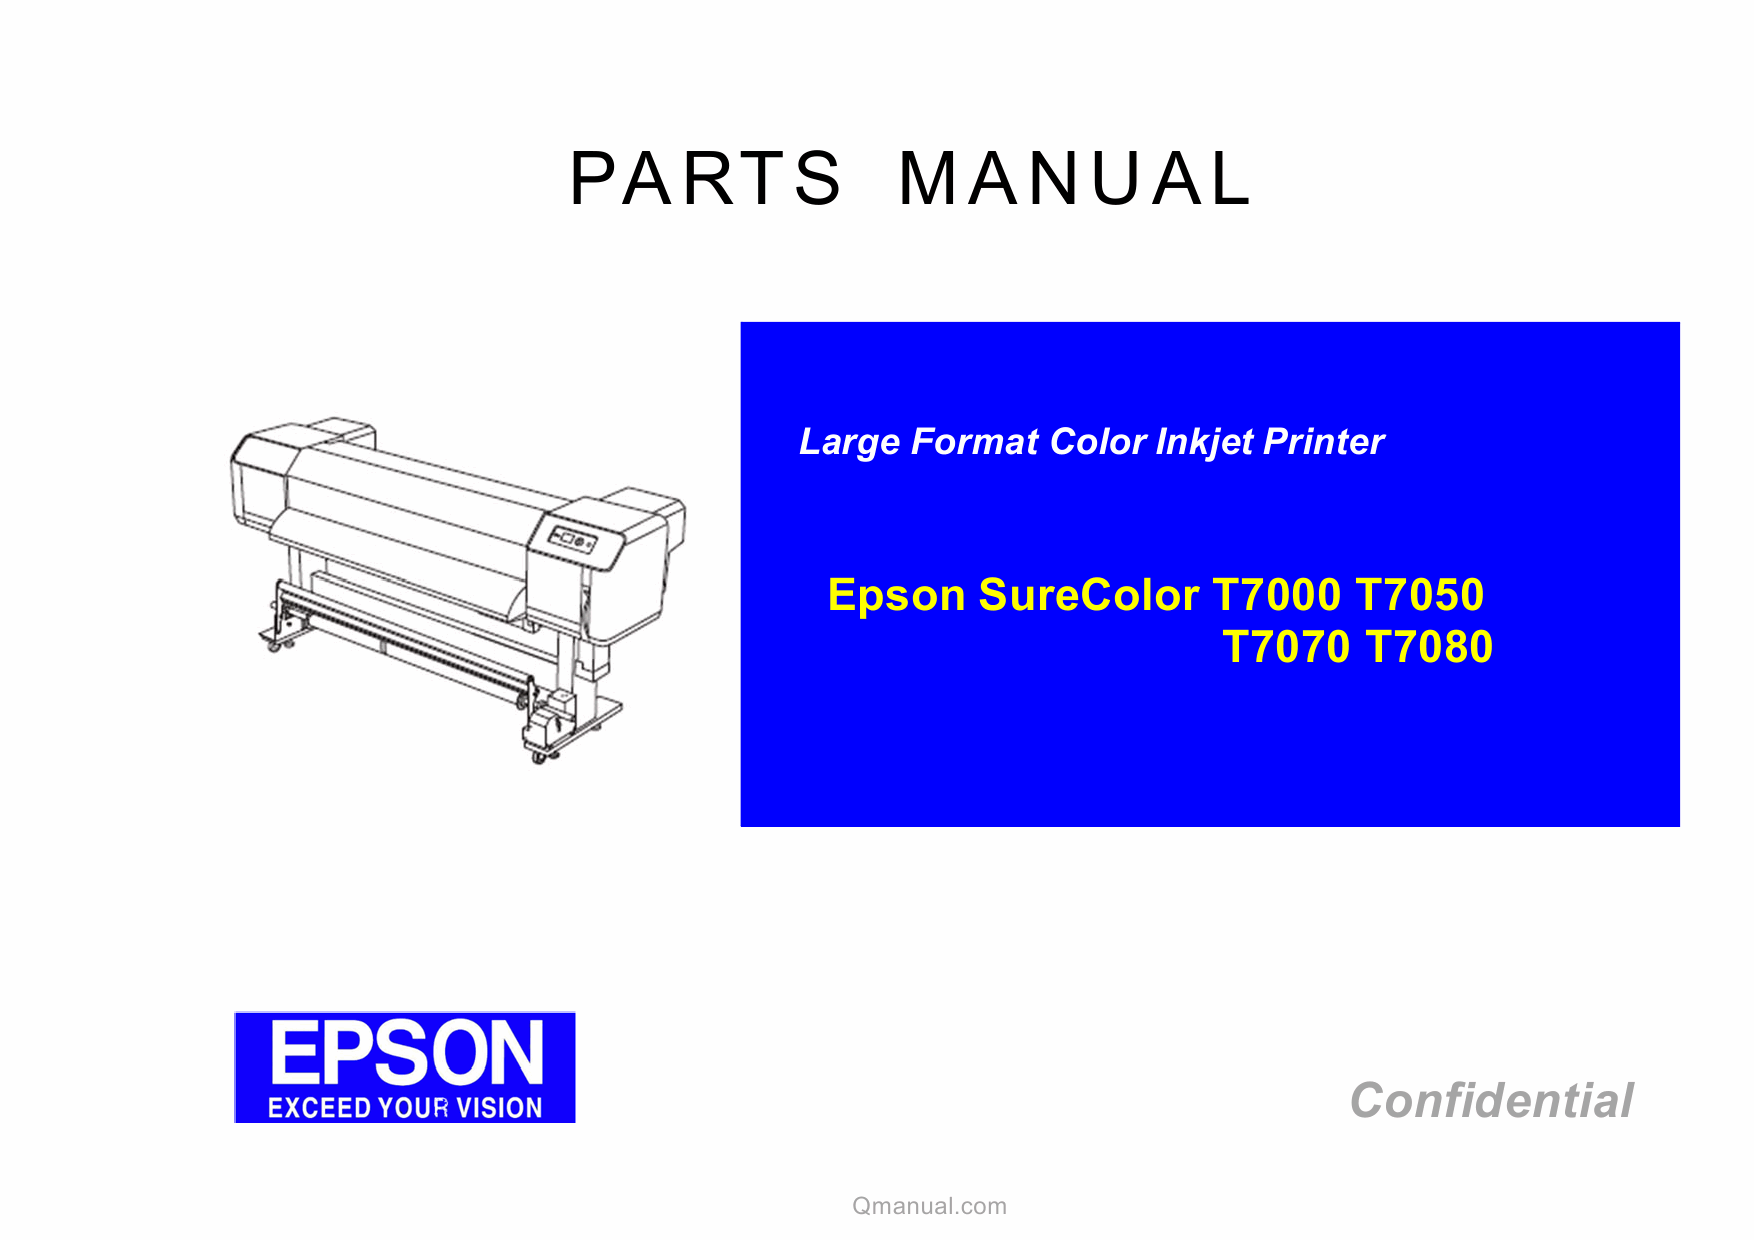 EPSON SureColor T7000 T7050 T7070 T7080 Parts Manual-1